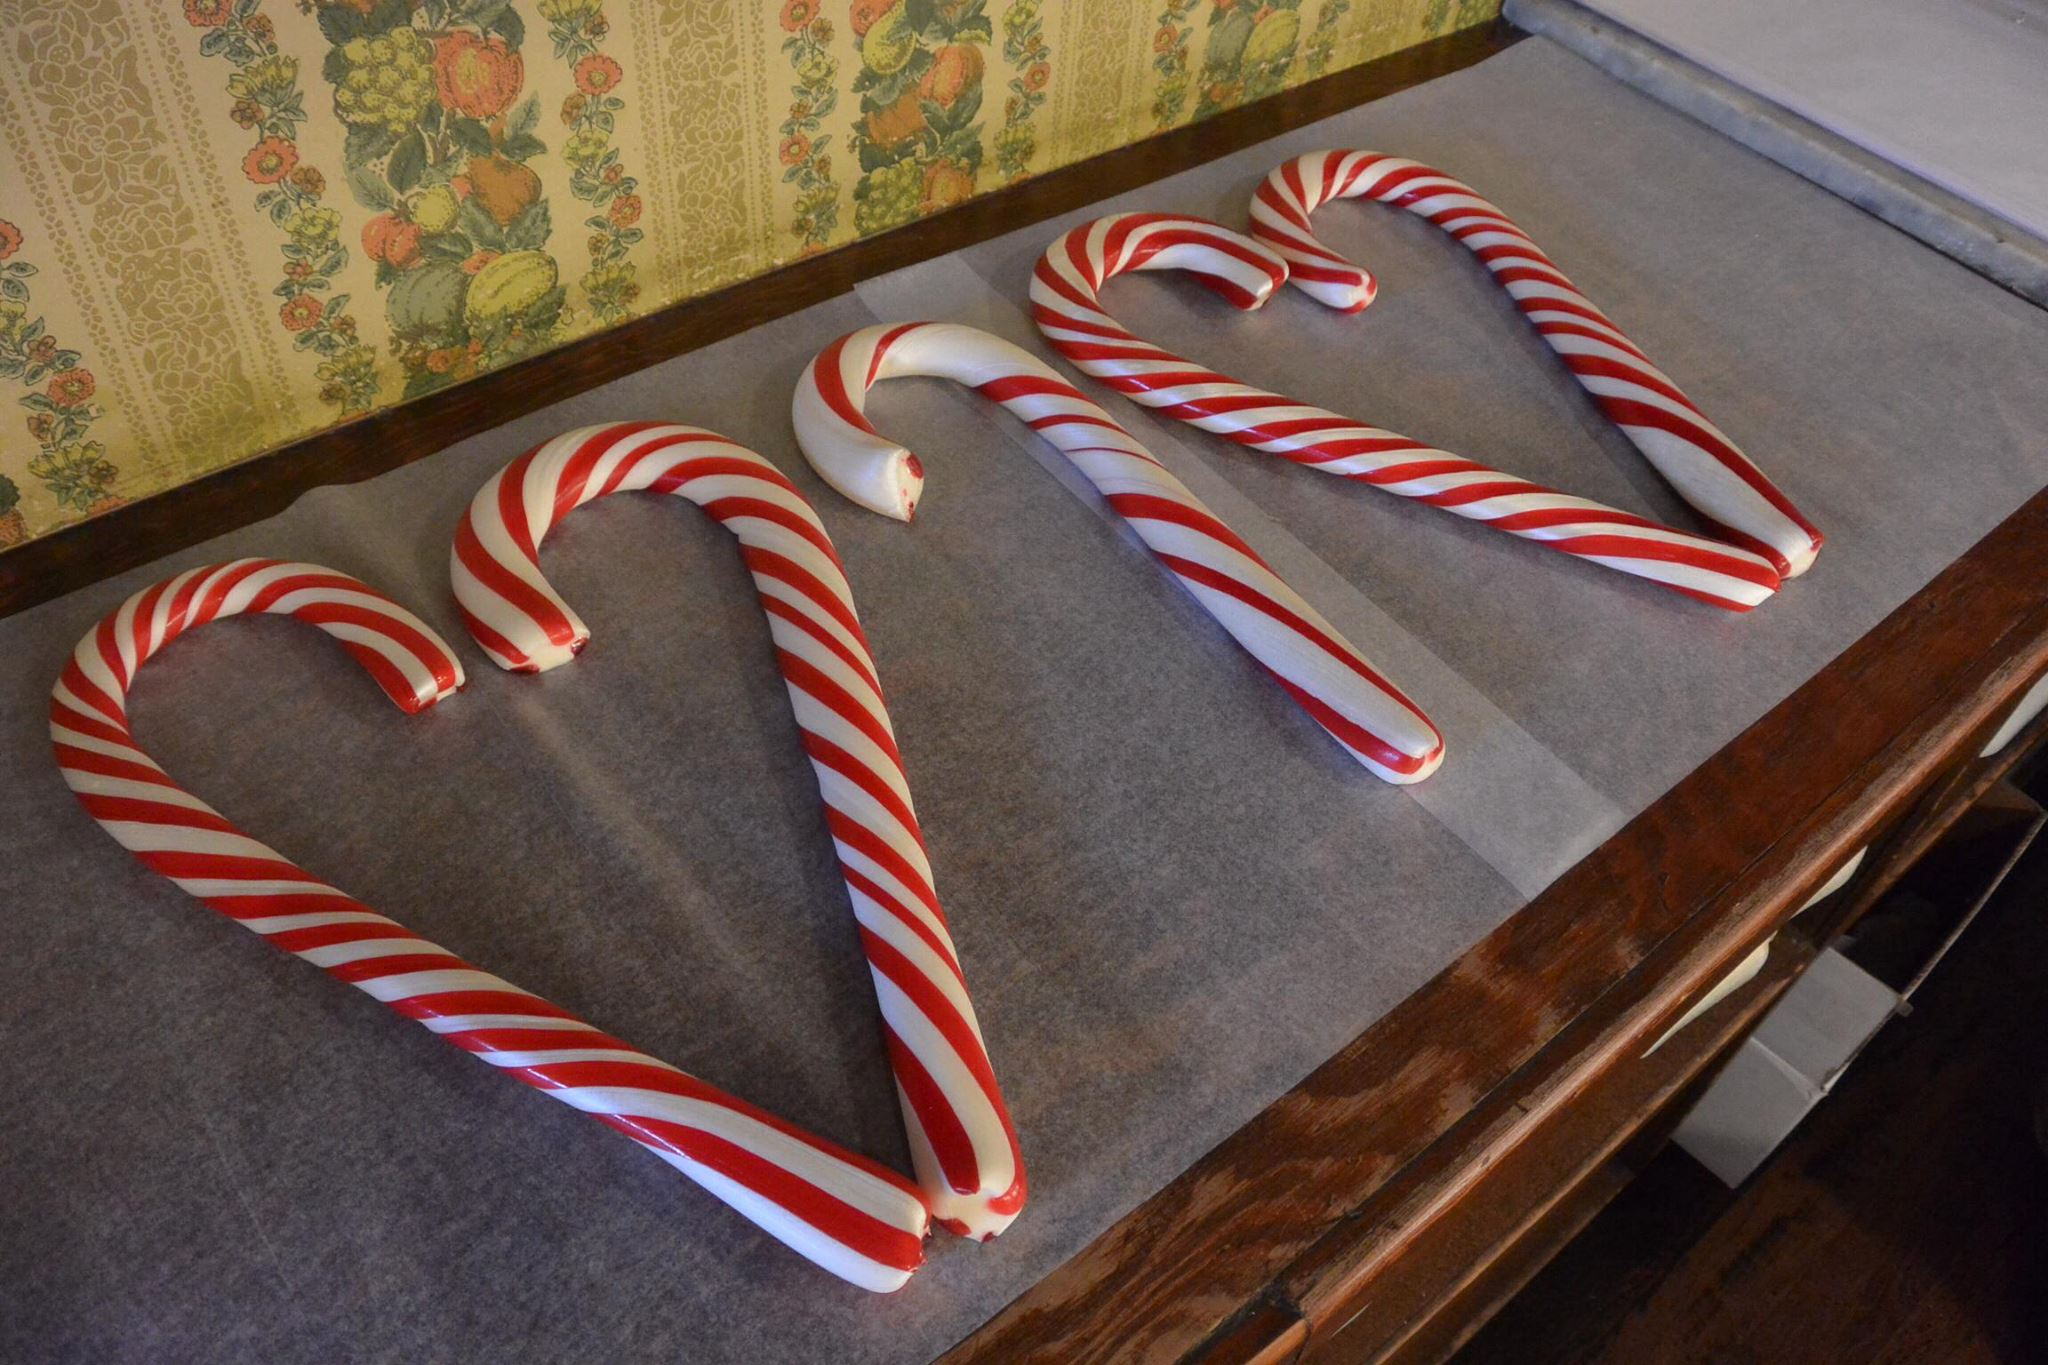 making candy canes the old fashioned way at nelsons candy kitchen in columbia